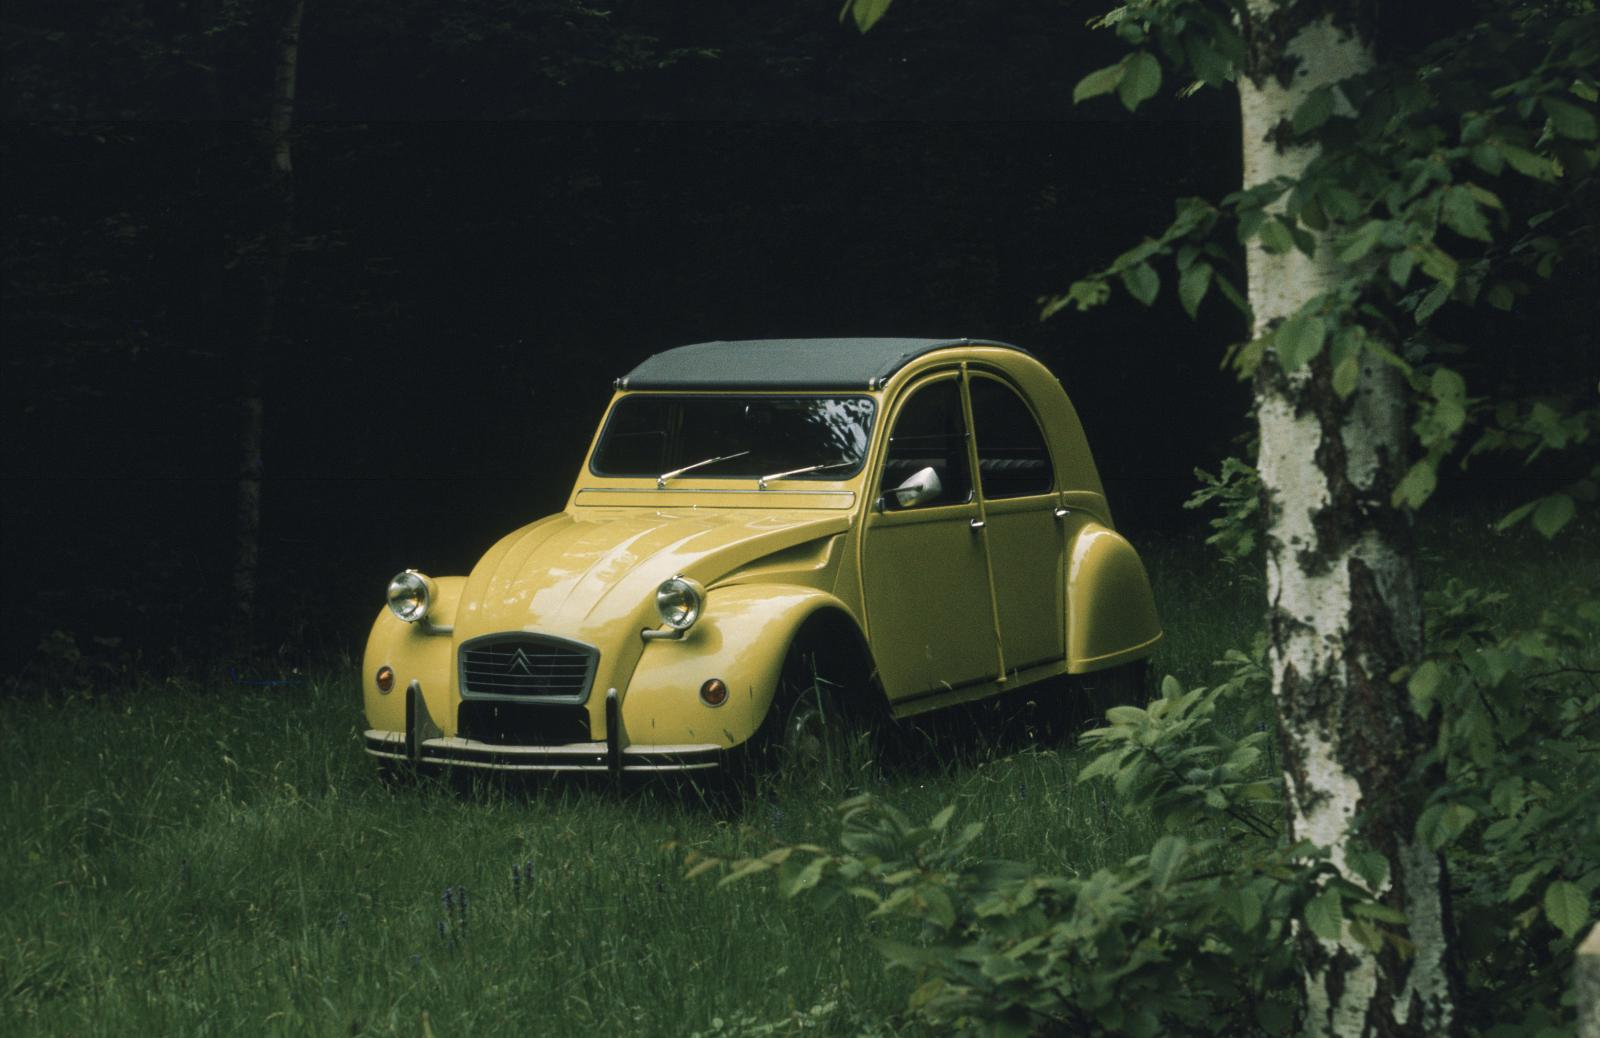 2CV Special Citron Yellow, 1976.